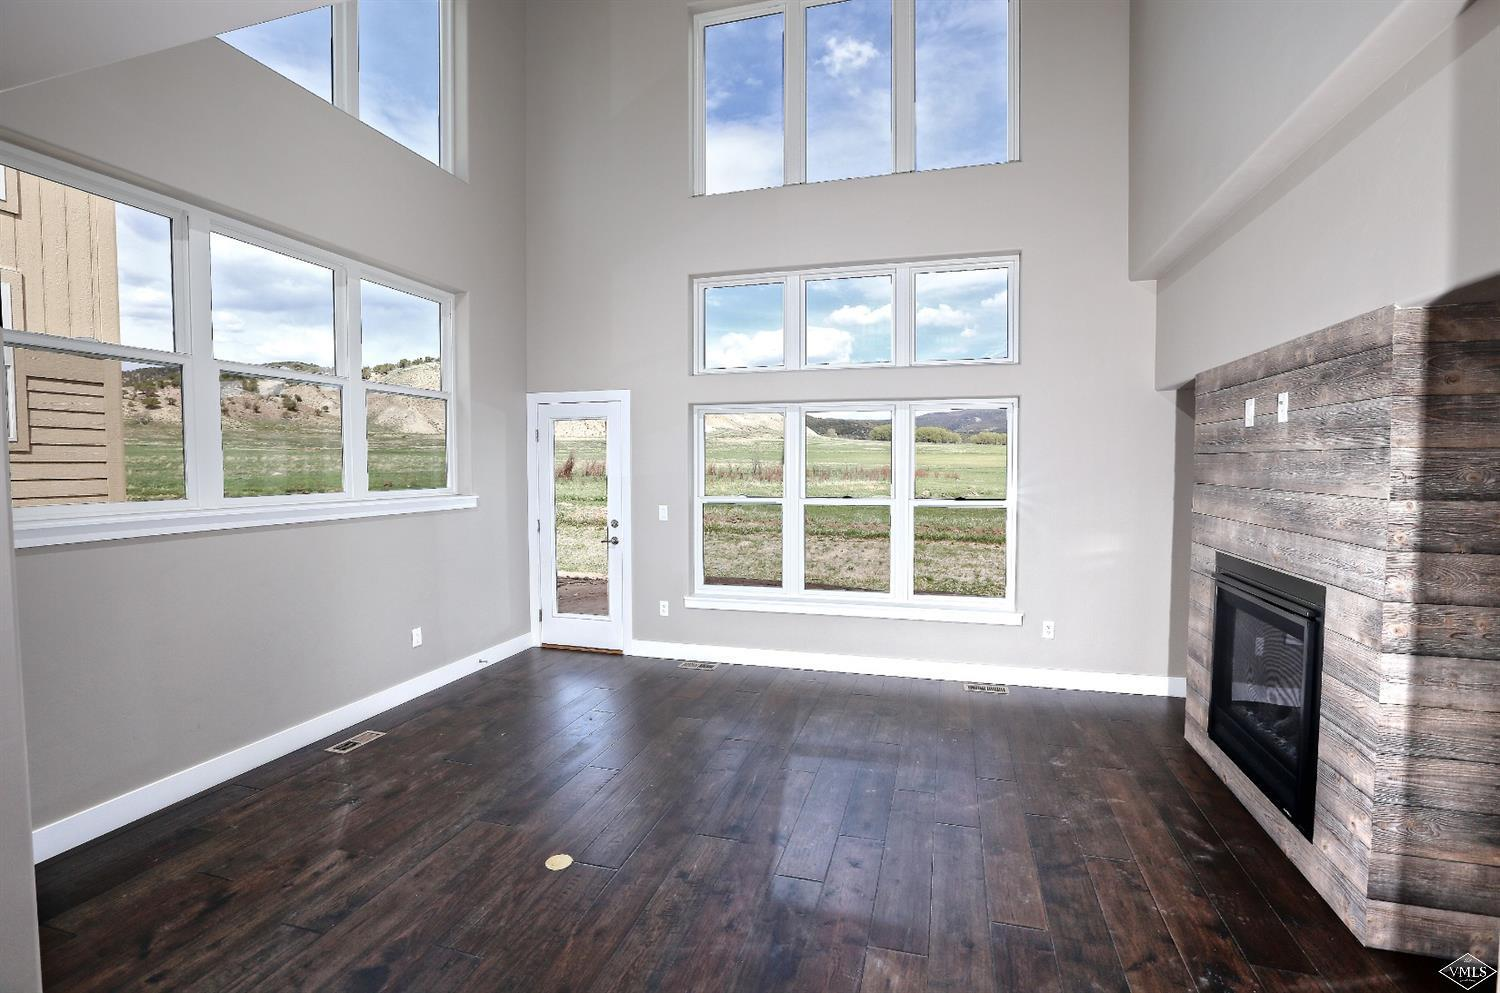 172 Soleil Circle, Eagle, Co 81631 Property Photo